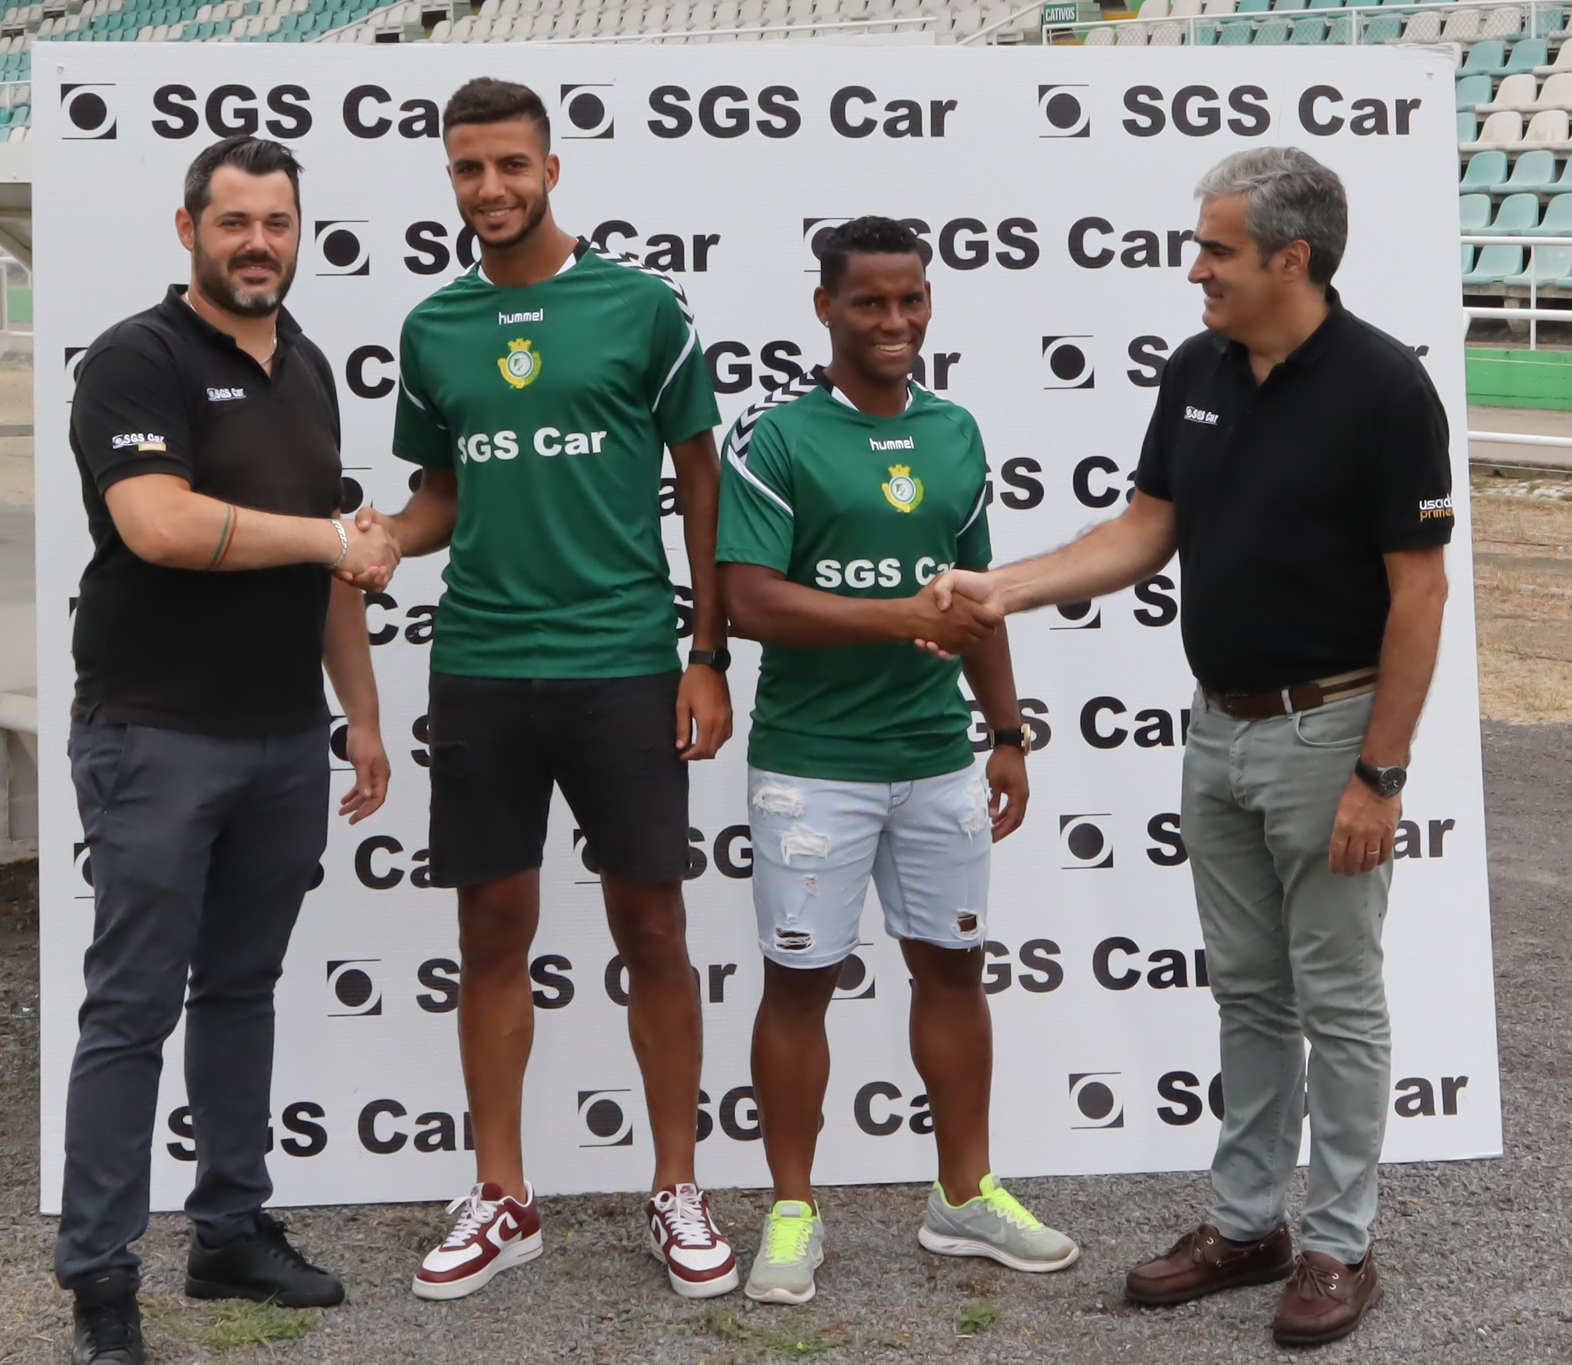 SGS Car - Vitoria_1